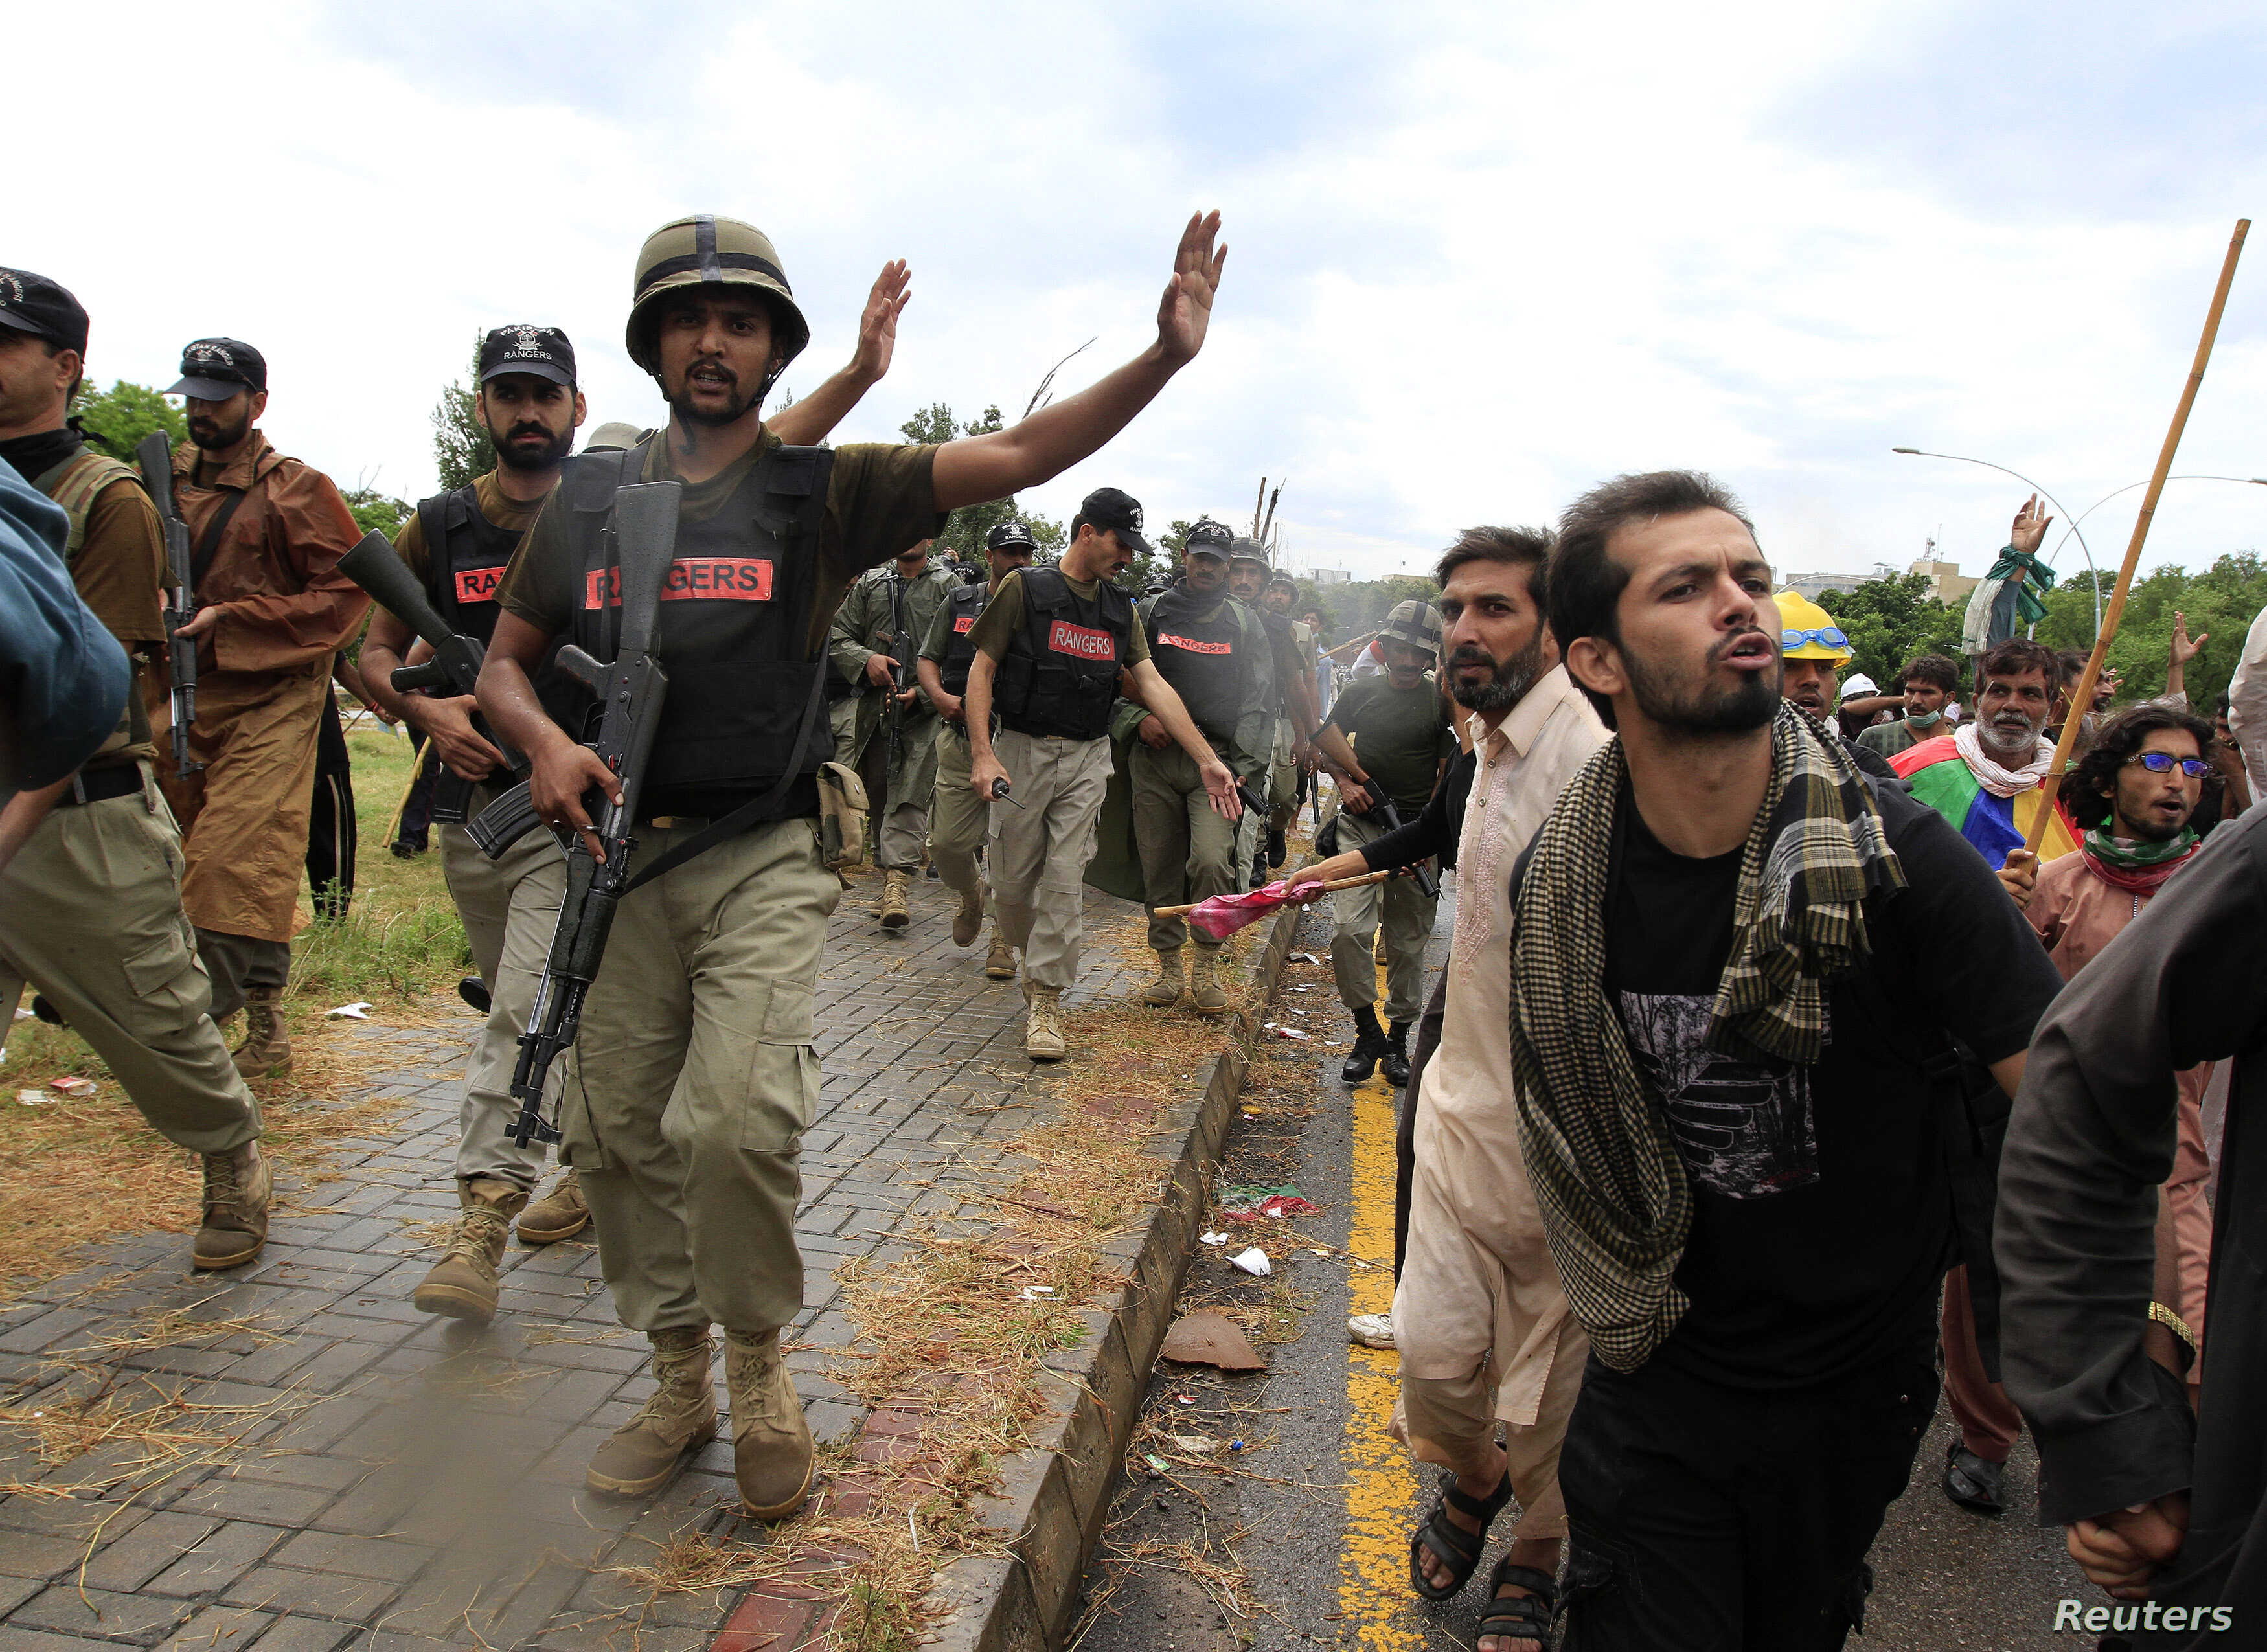 Soldiers from the Pakistan Rangers stop demonstrators during the Revolution March in Islamabad, Sept. 1, 2014.